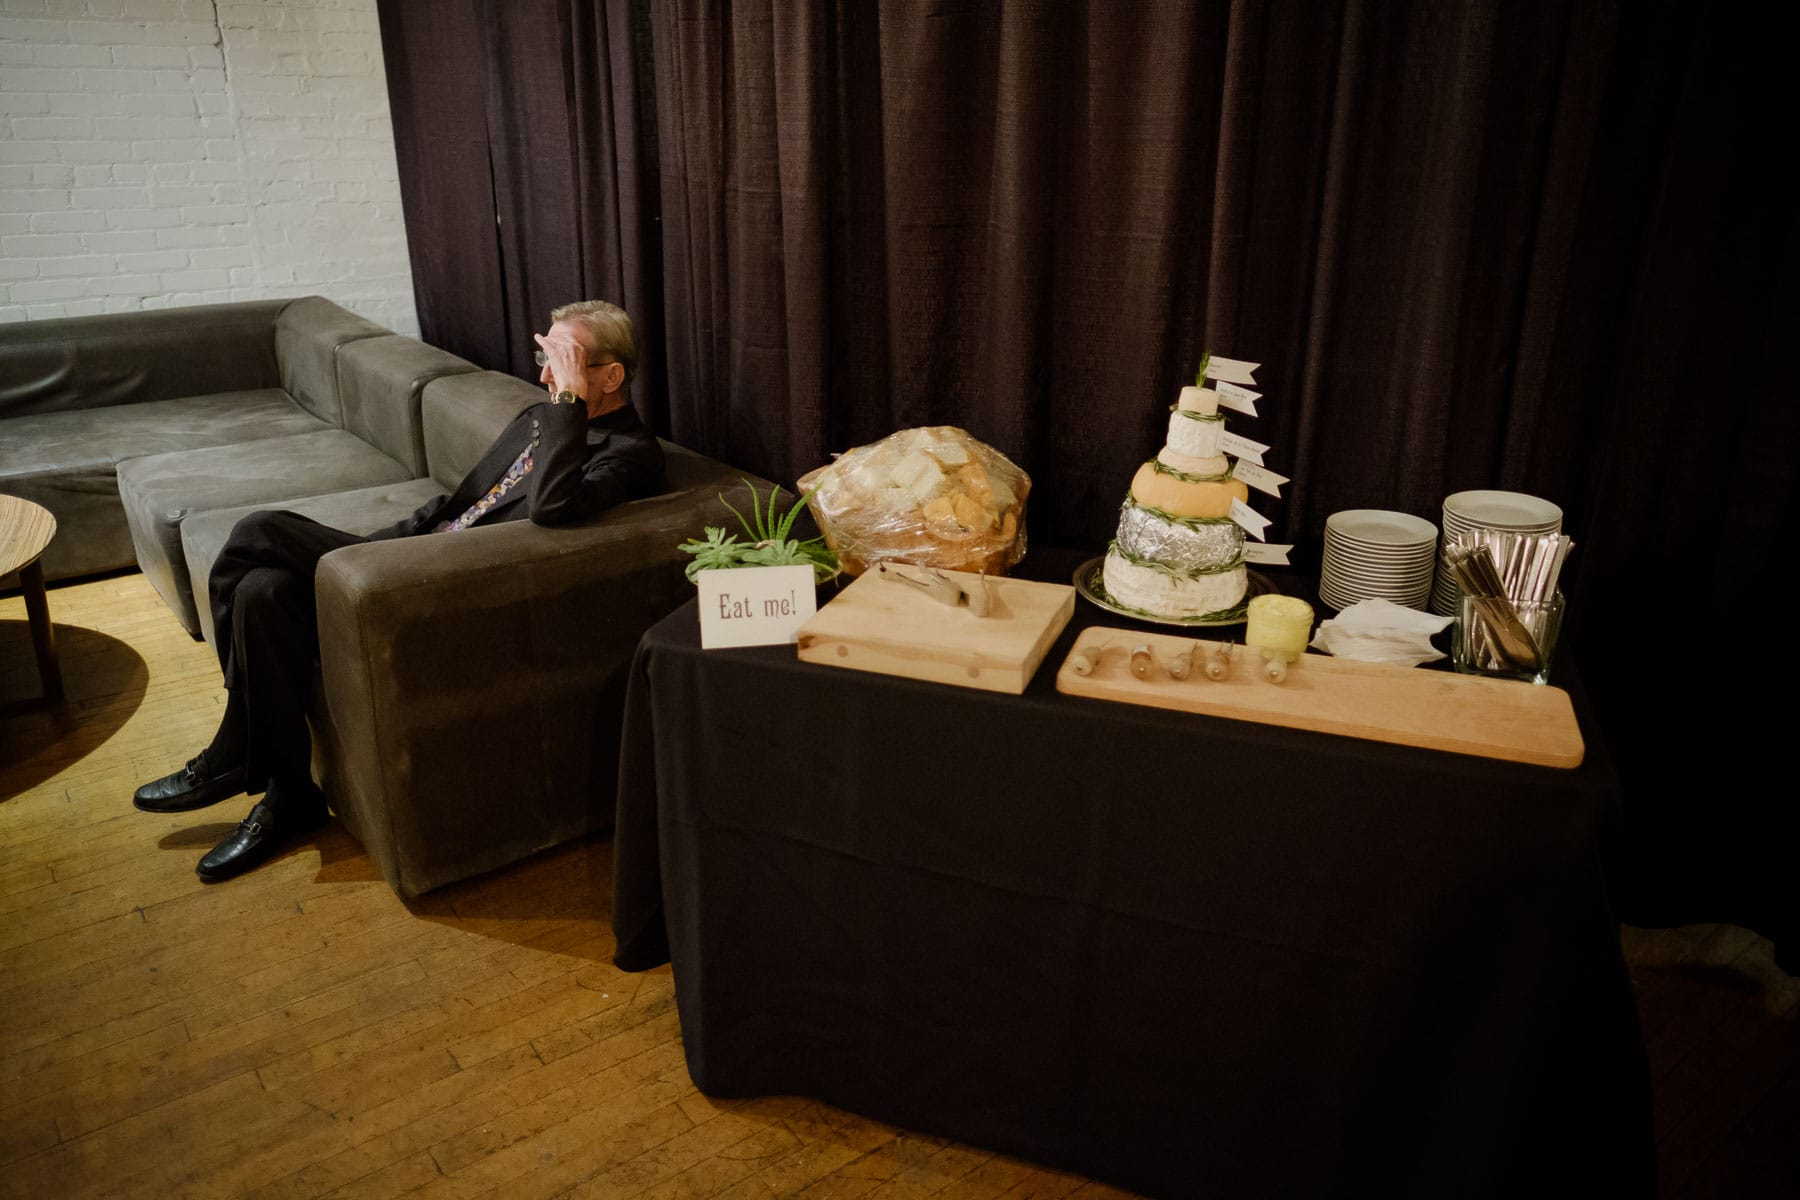 A man sits on a couch with a cake made of cheese on a table in foreground at The Burroughes building wedding.